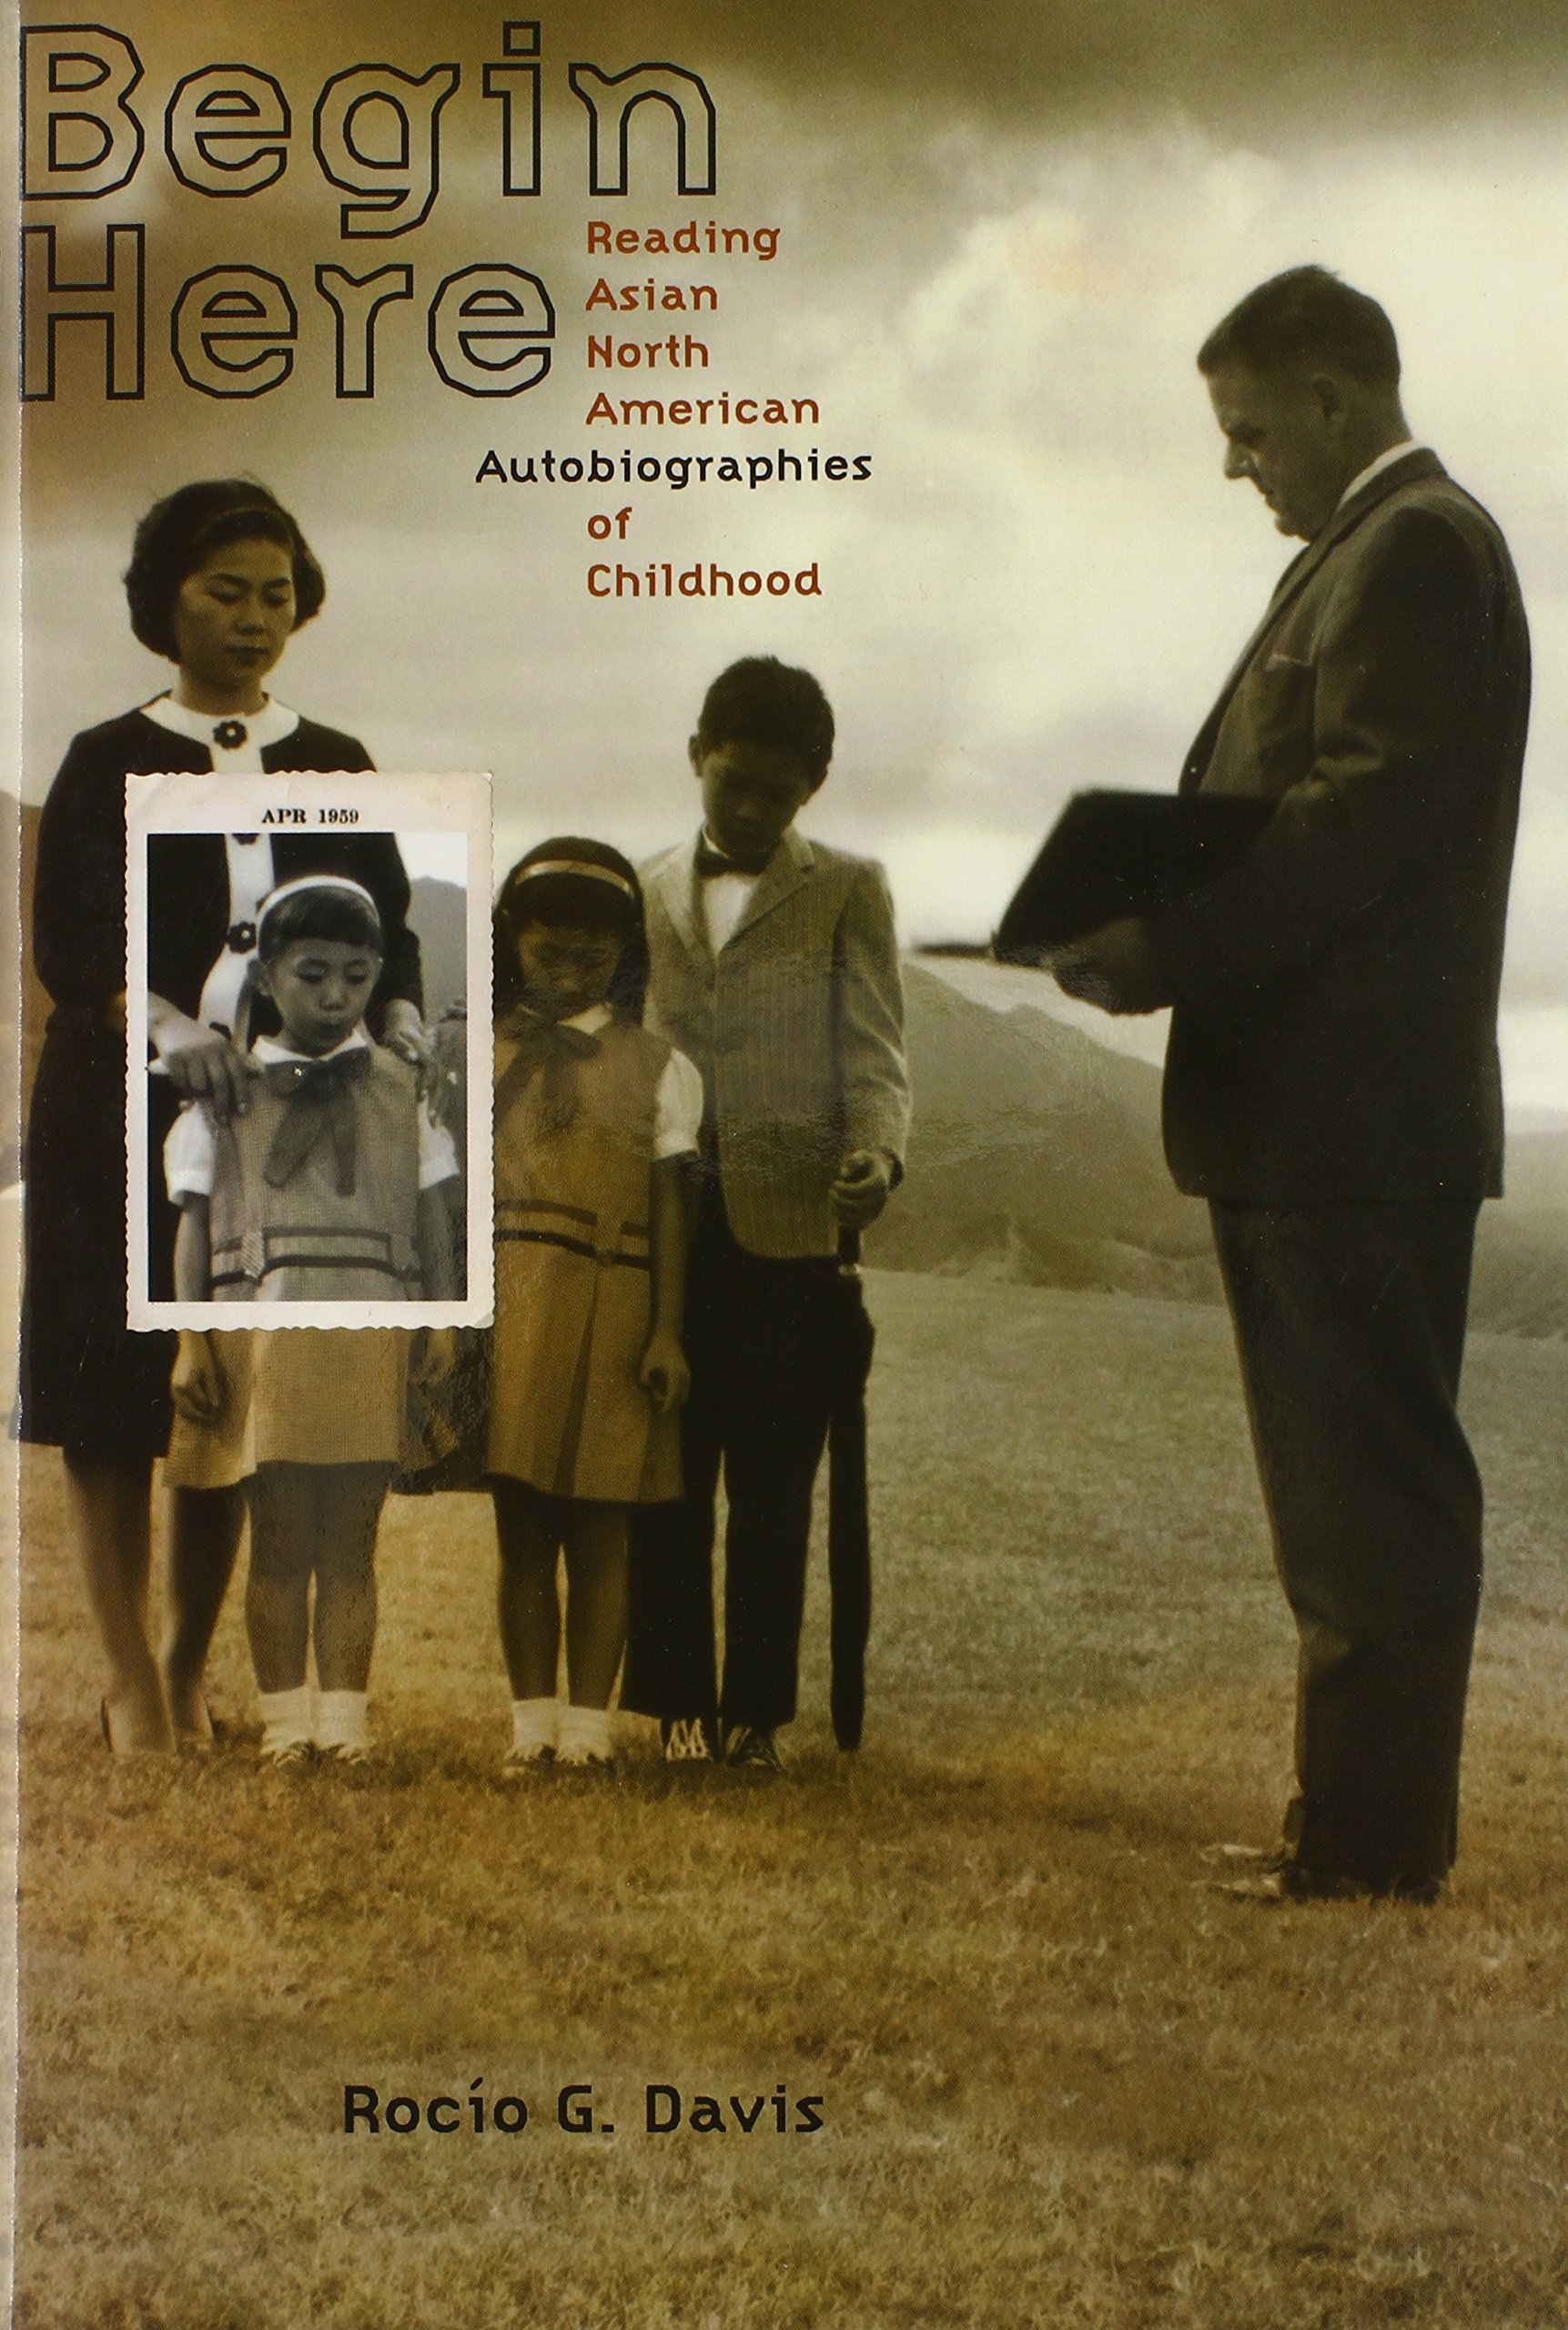 Begin Here: Reading Asian North American Autobiographies of Childhood ebook